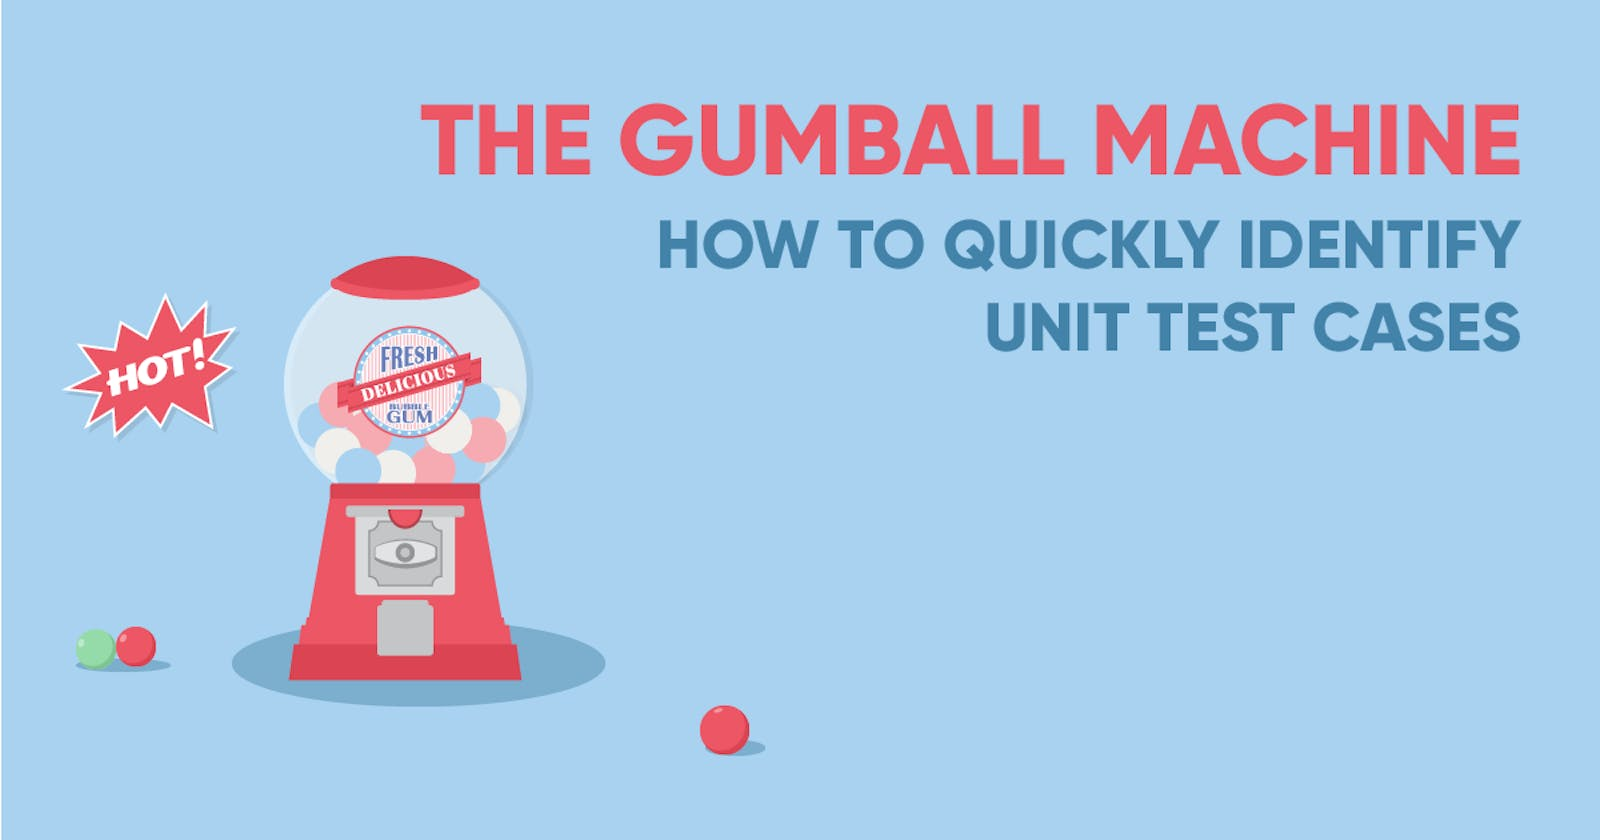 The Gumball Machine: How To Quickly Identify Unit Test Cases